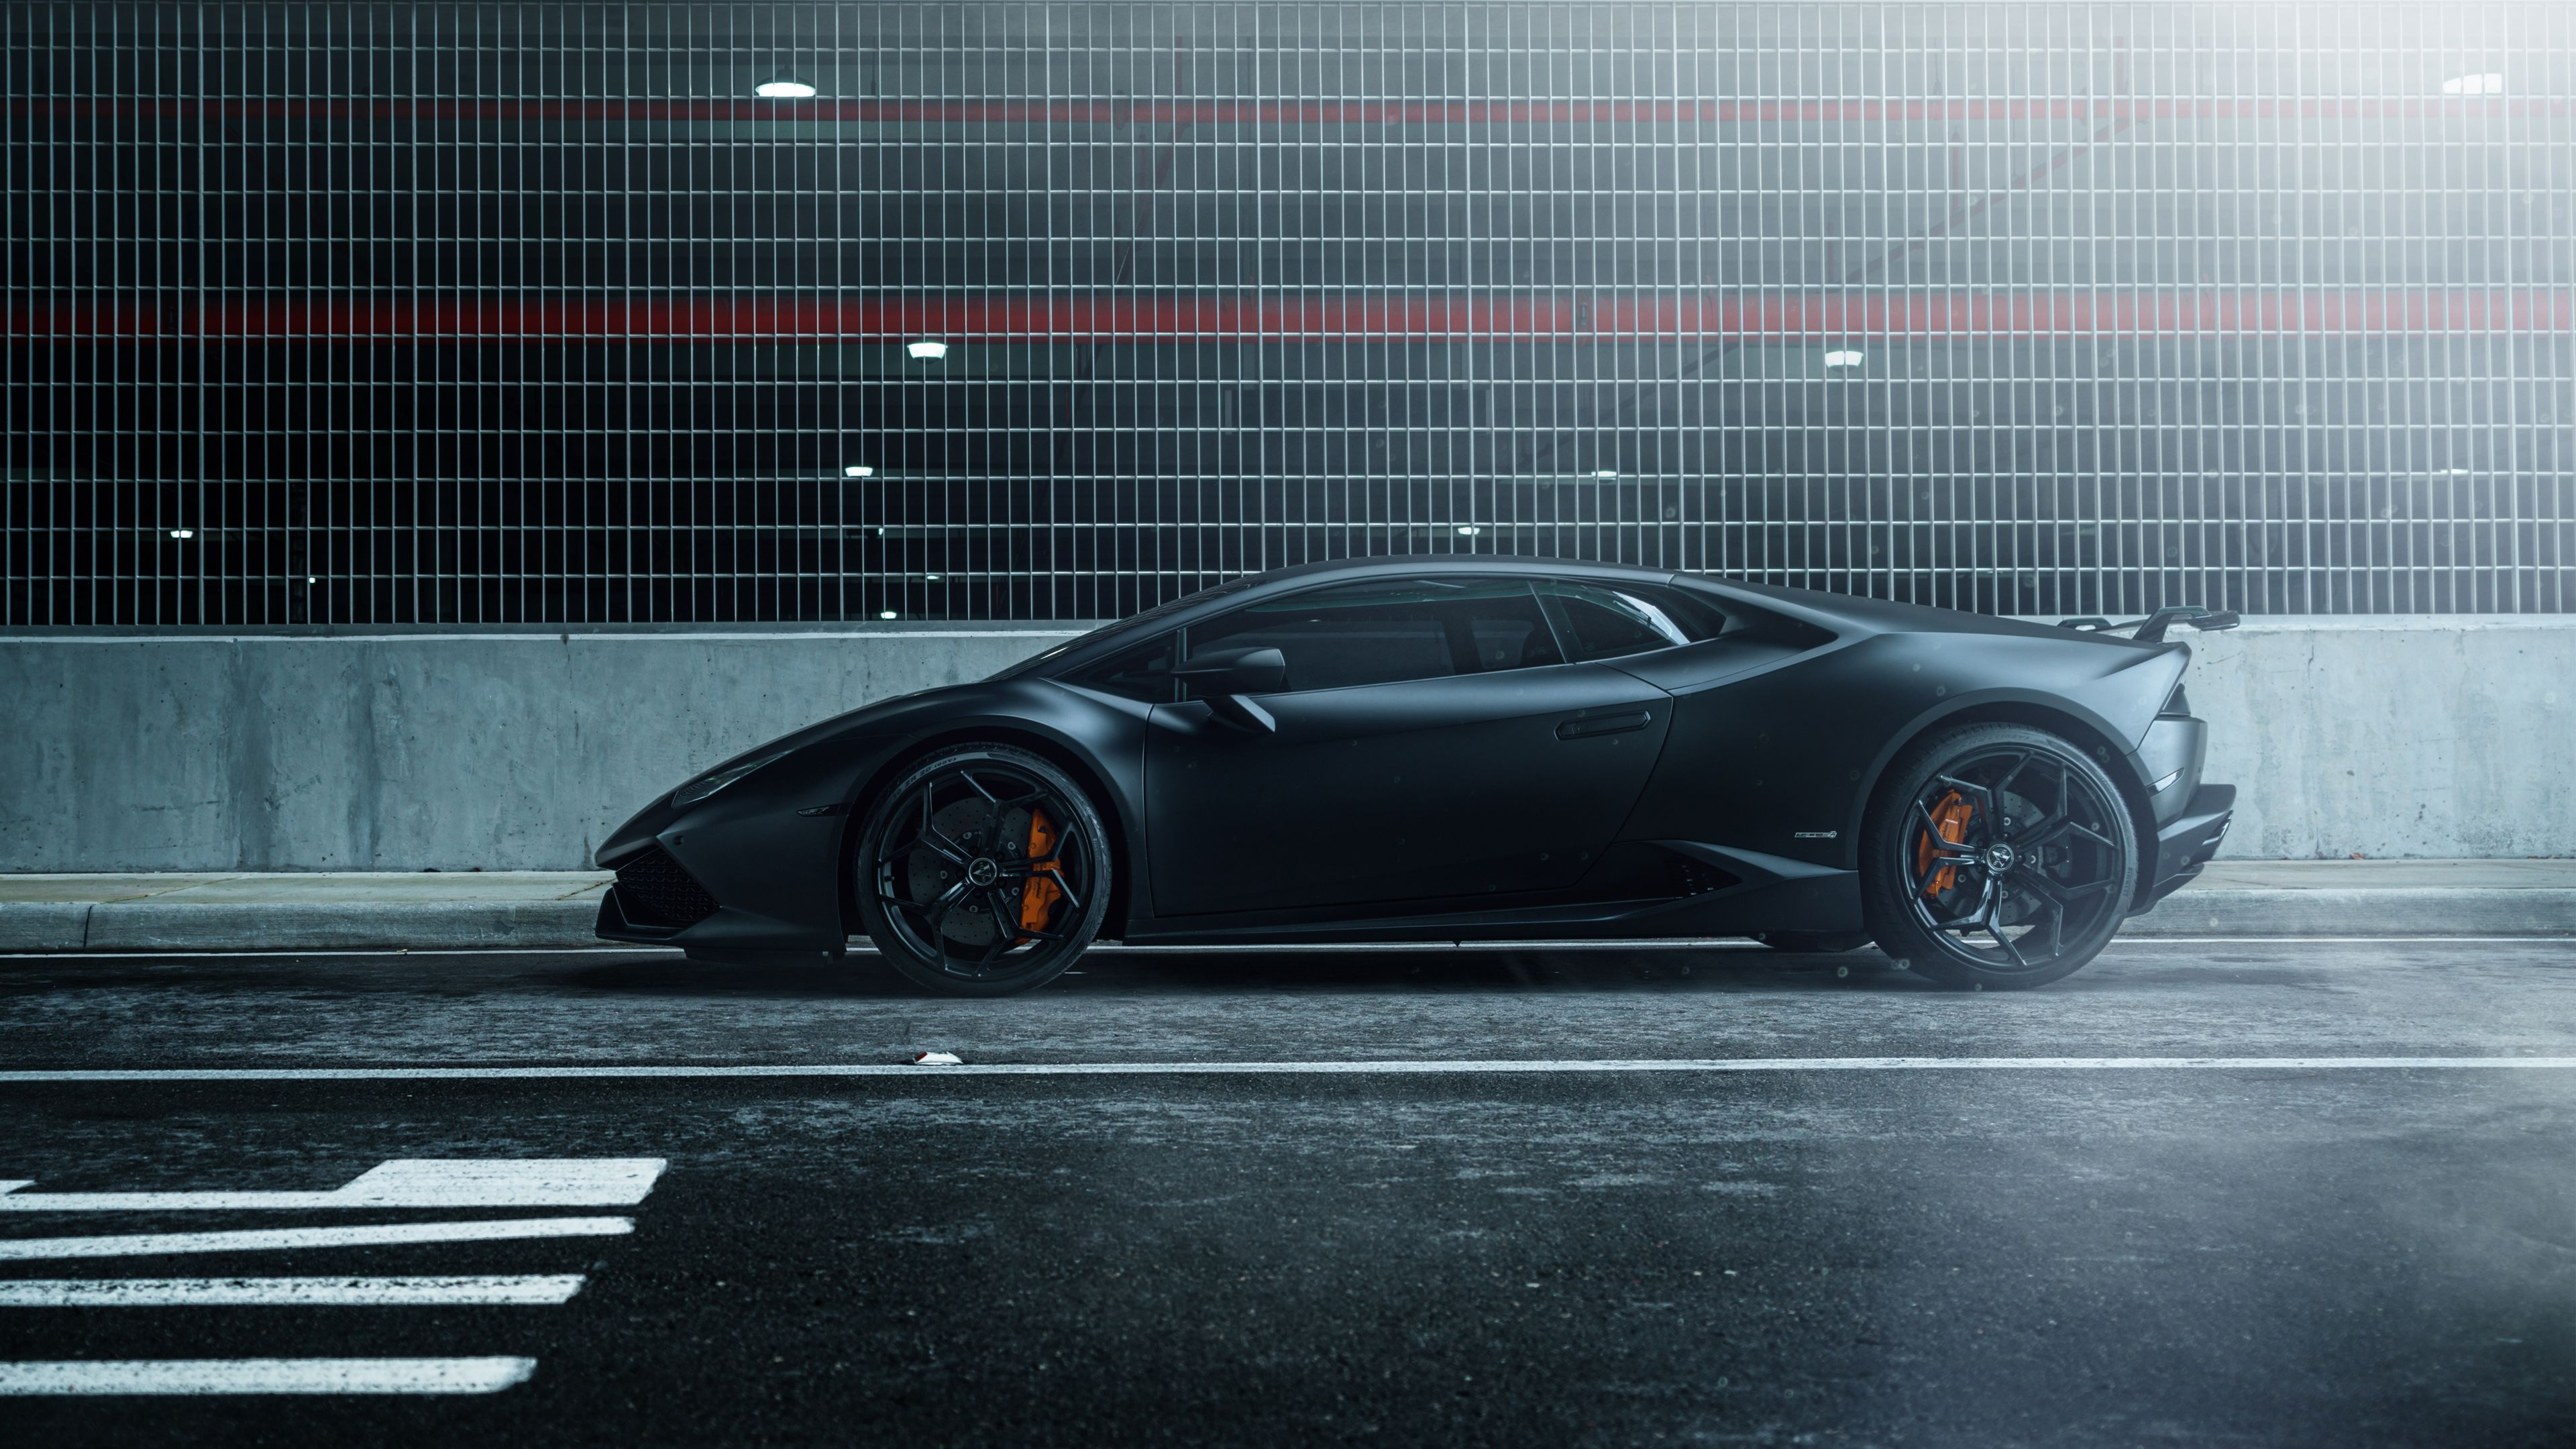 Lamborghini Huracan Wallpapers Full Hd | Vehicles Wallpapers ...